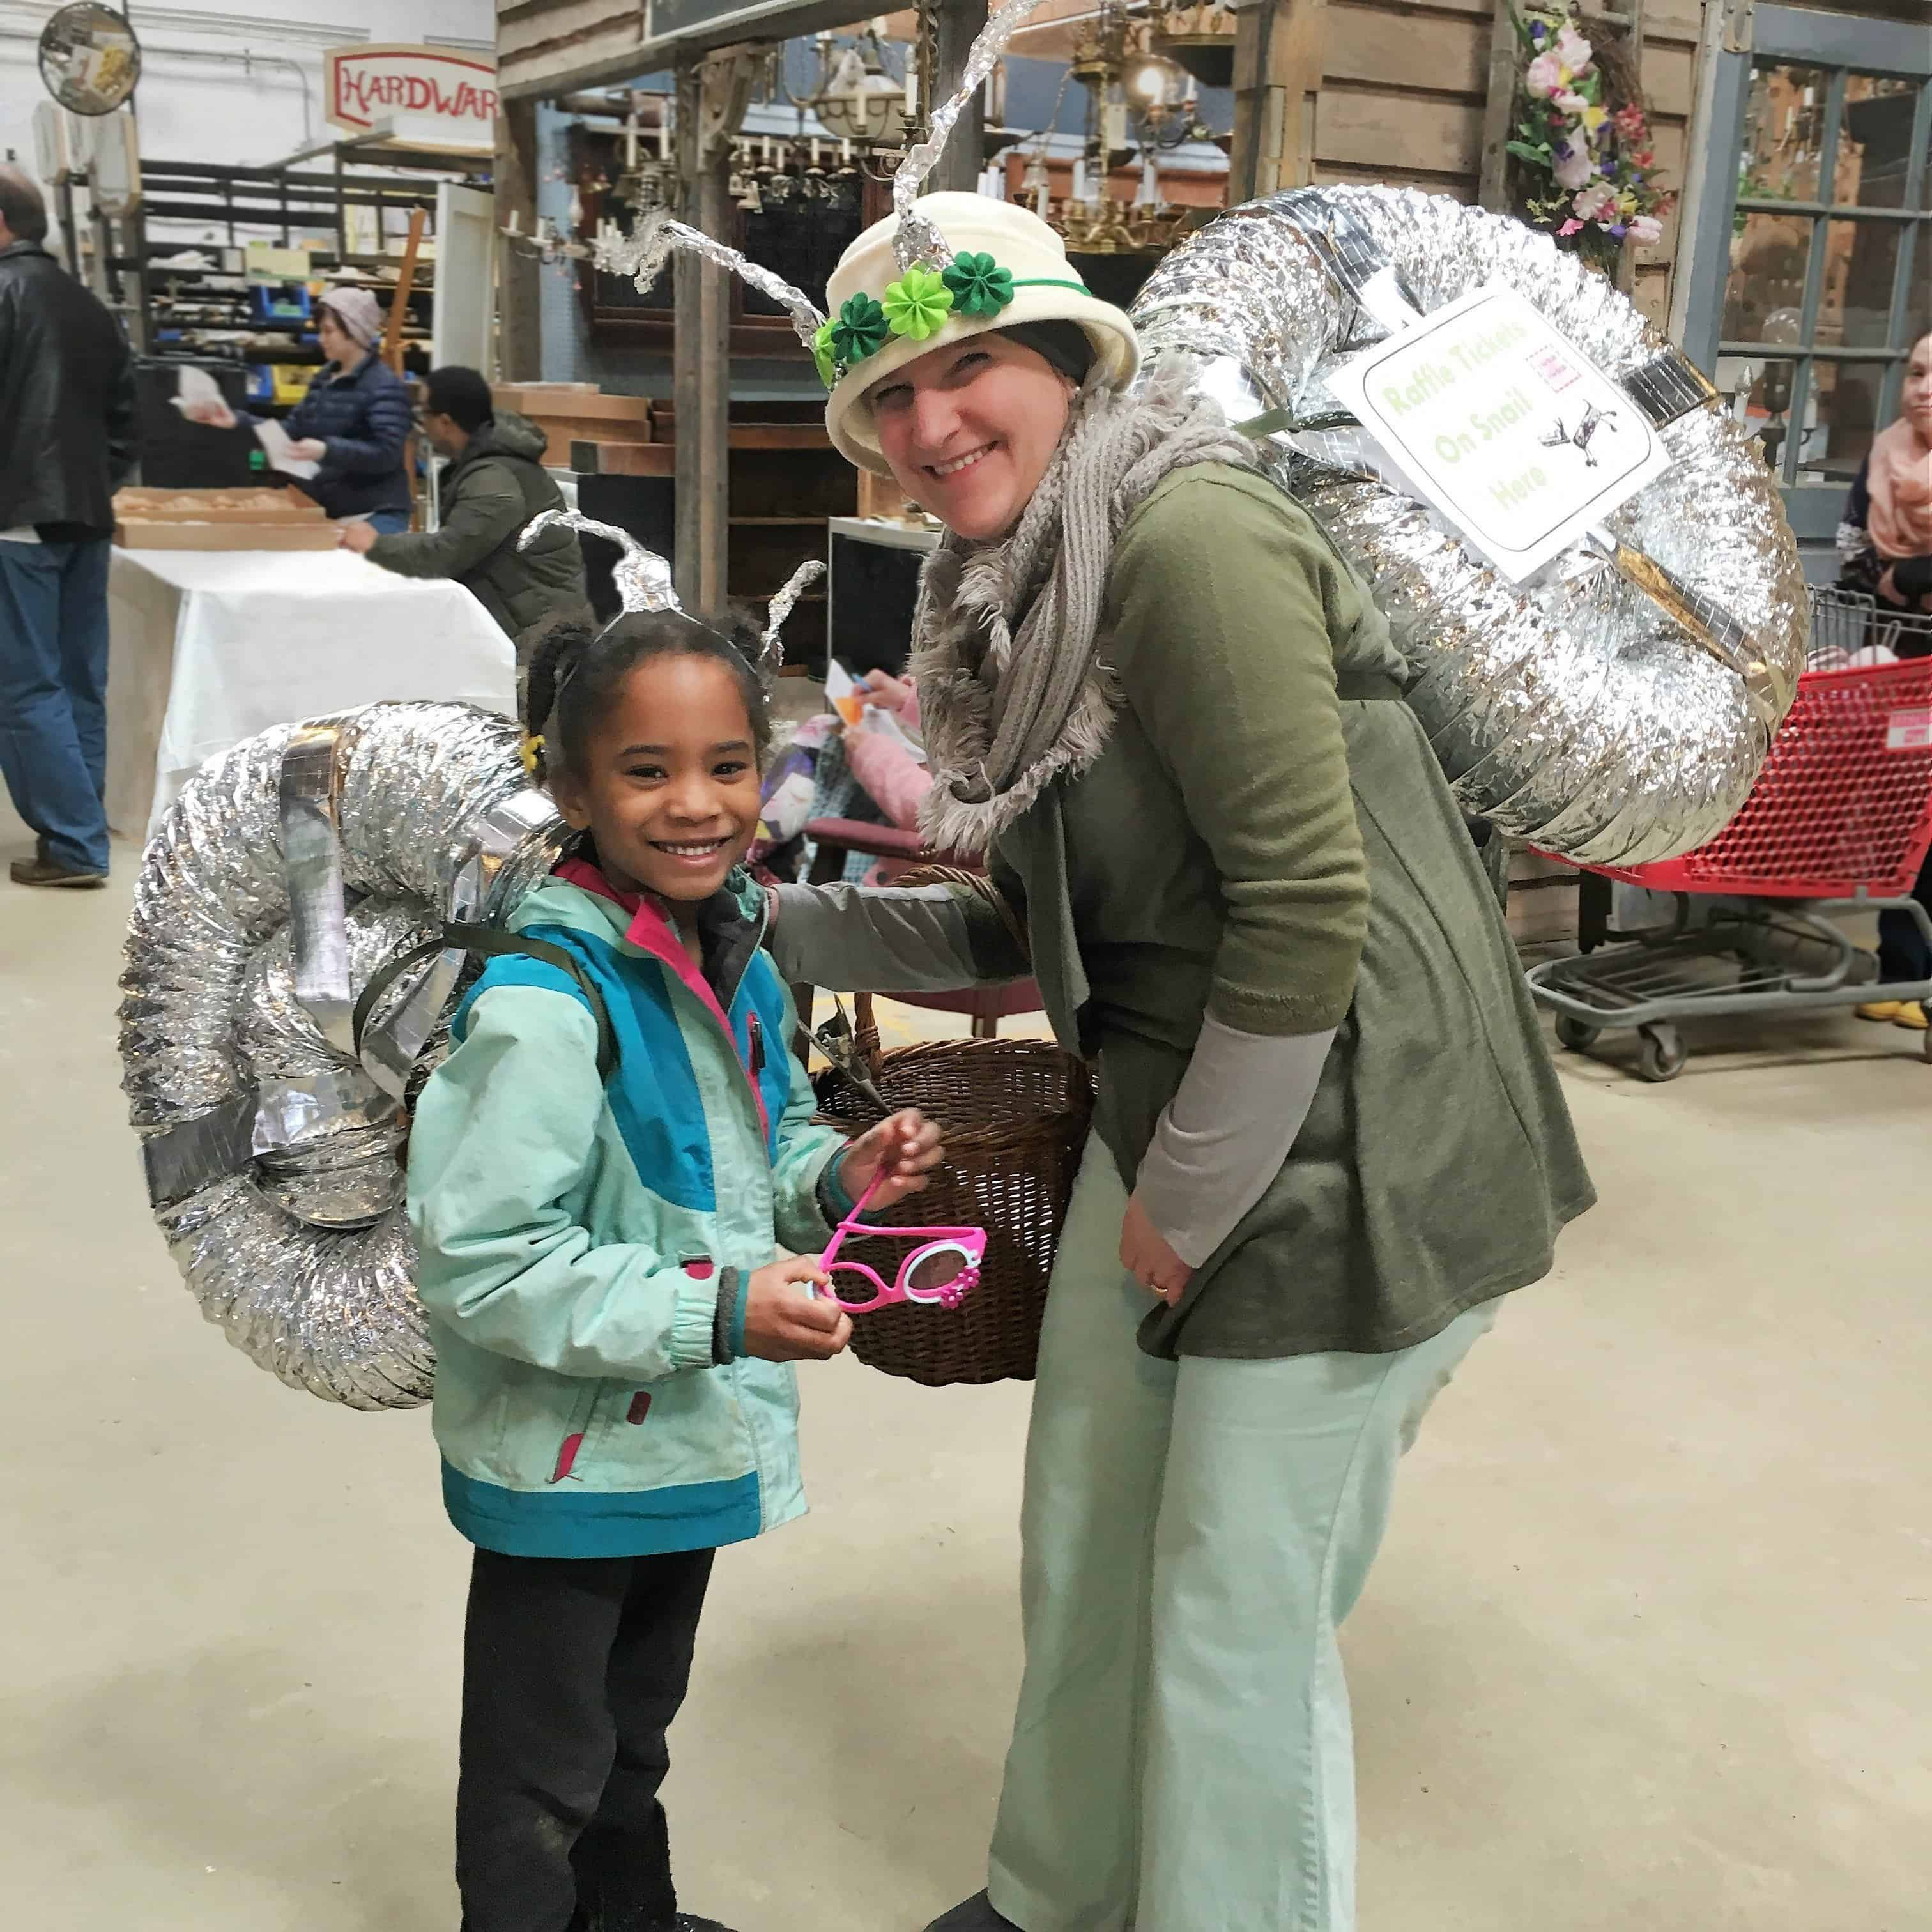 Mother and daughter snail costumes, Community Forklift Garden Party